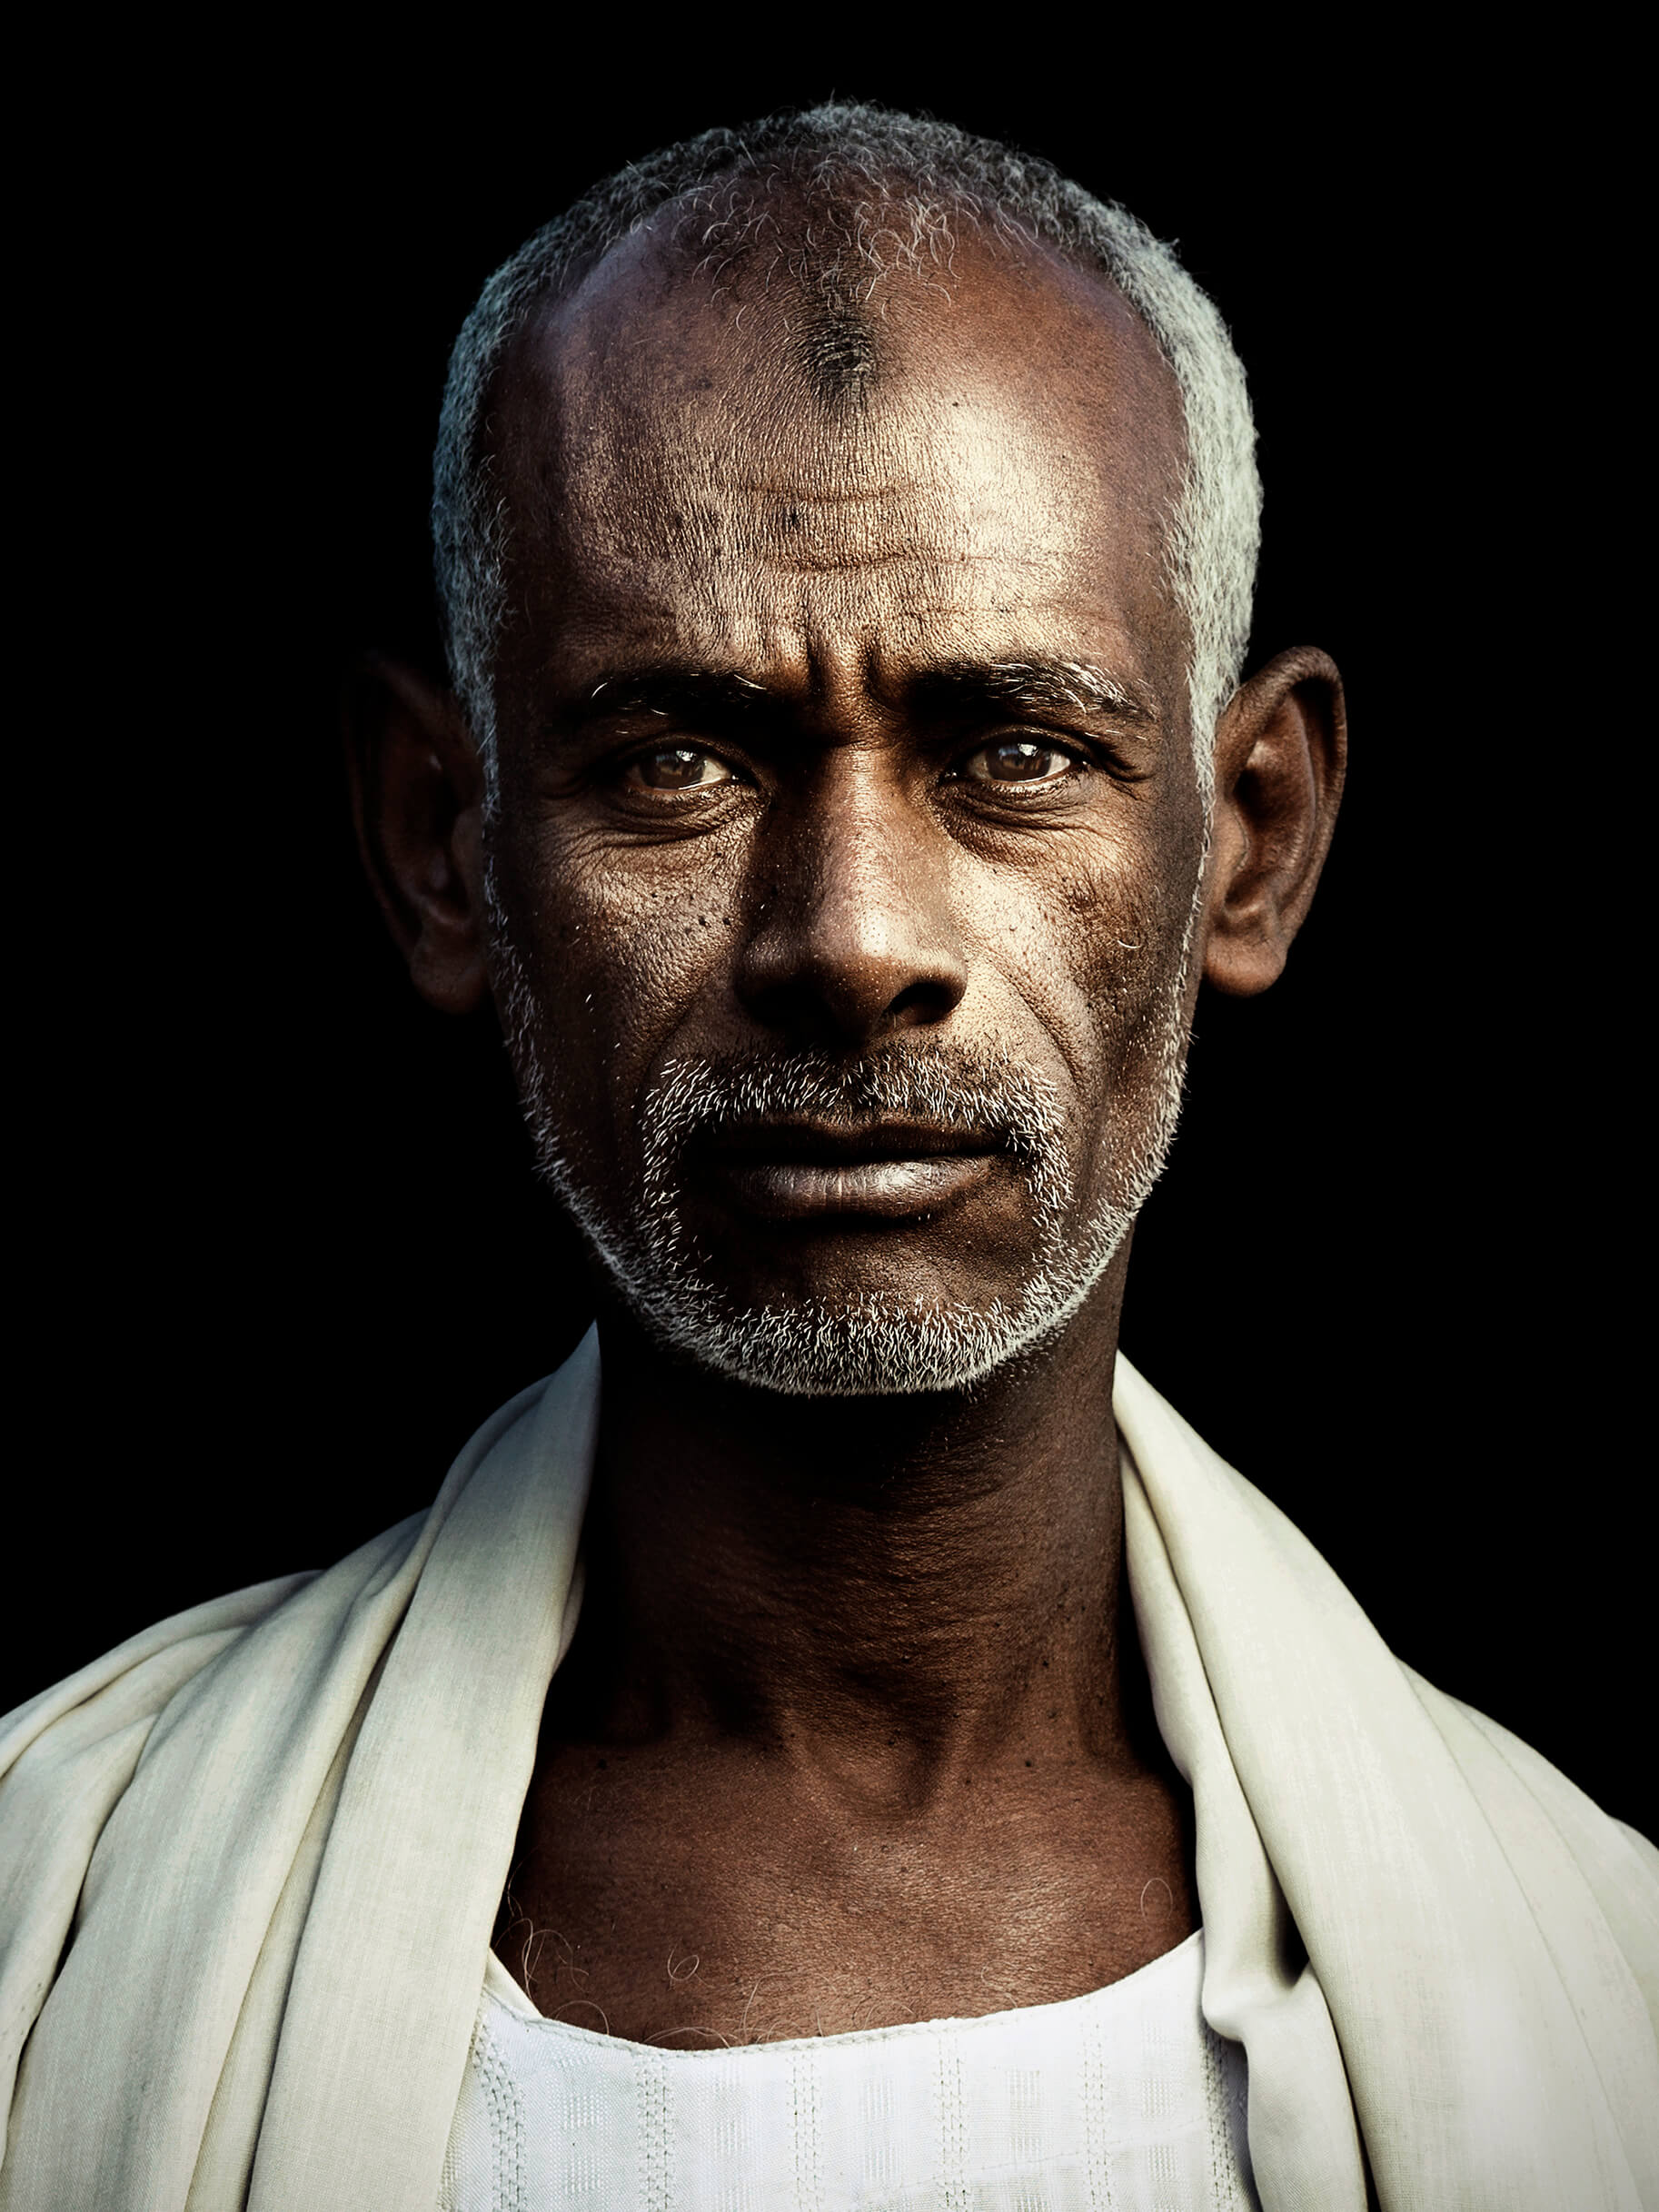 Egypt_People_Portraits_0011